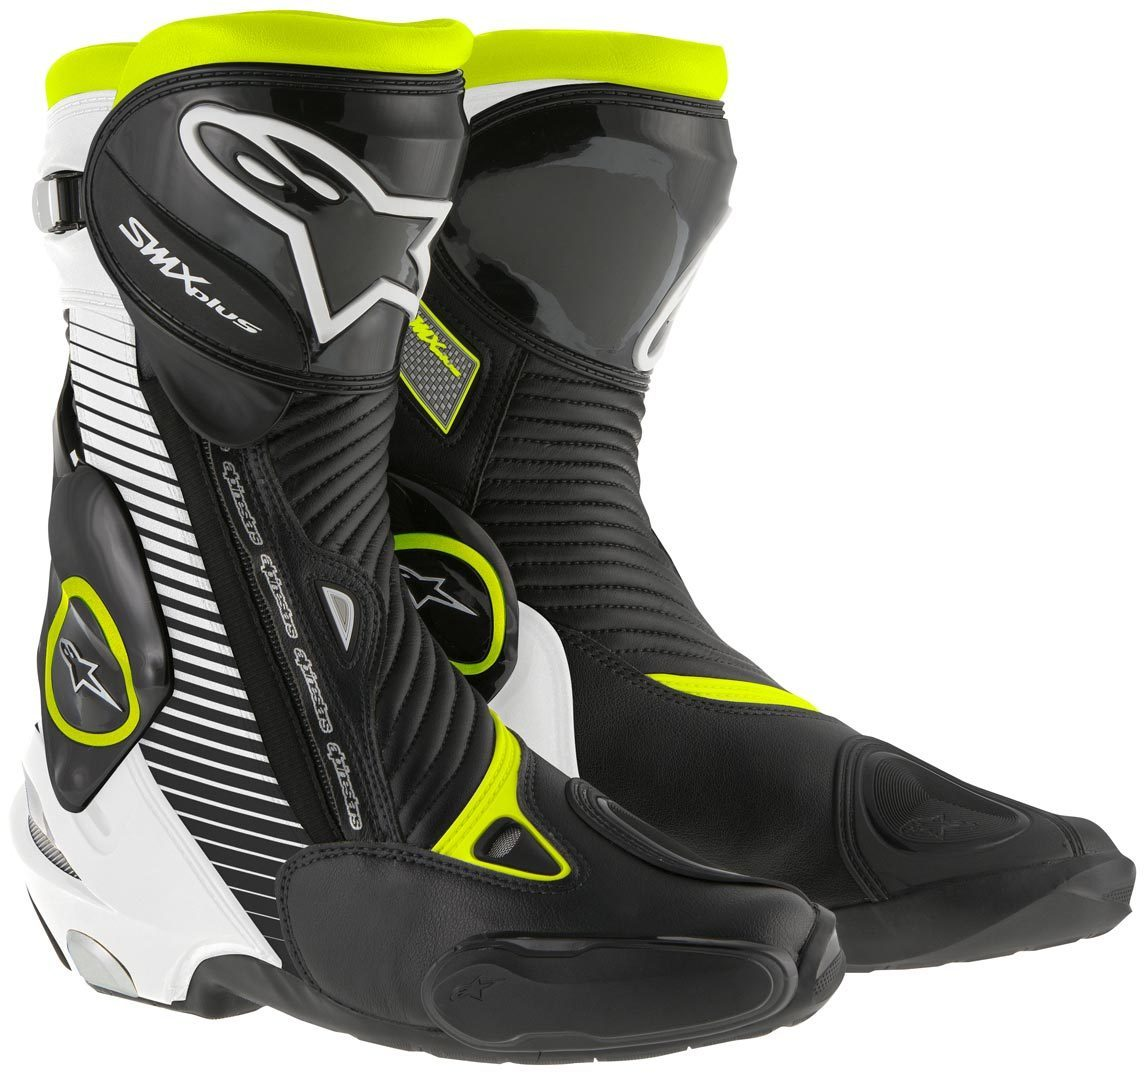 Stivali moto racing Alpinestars S-MX PLUS nero bianco giallo